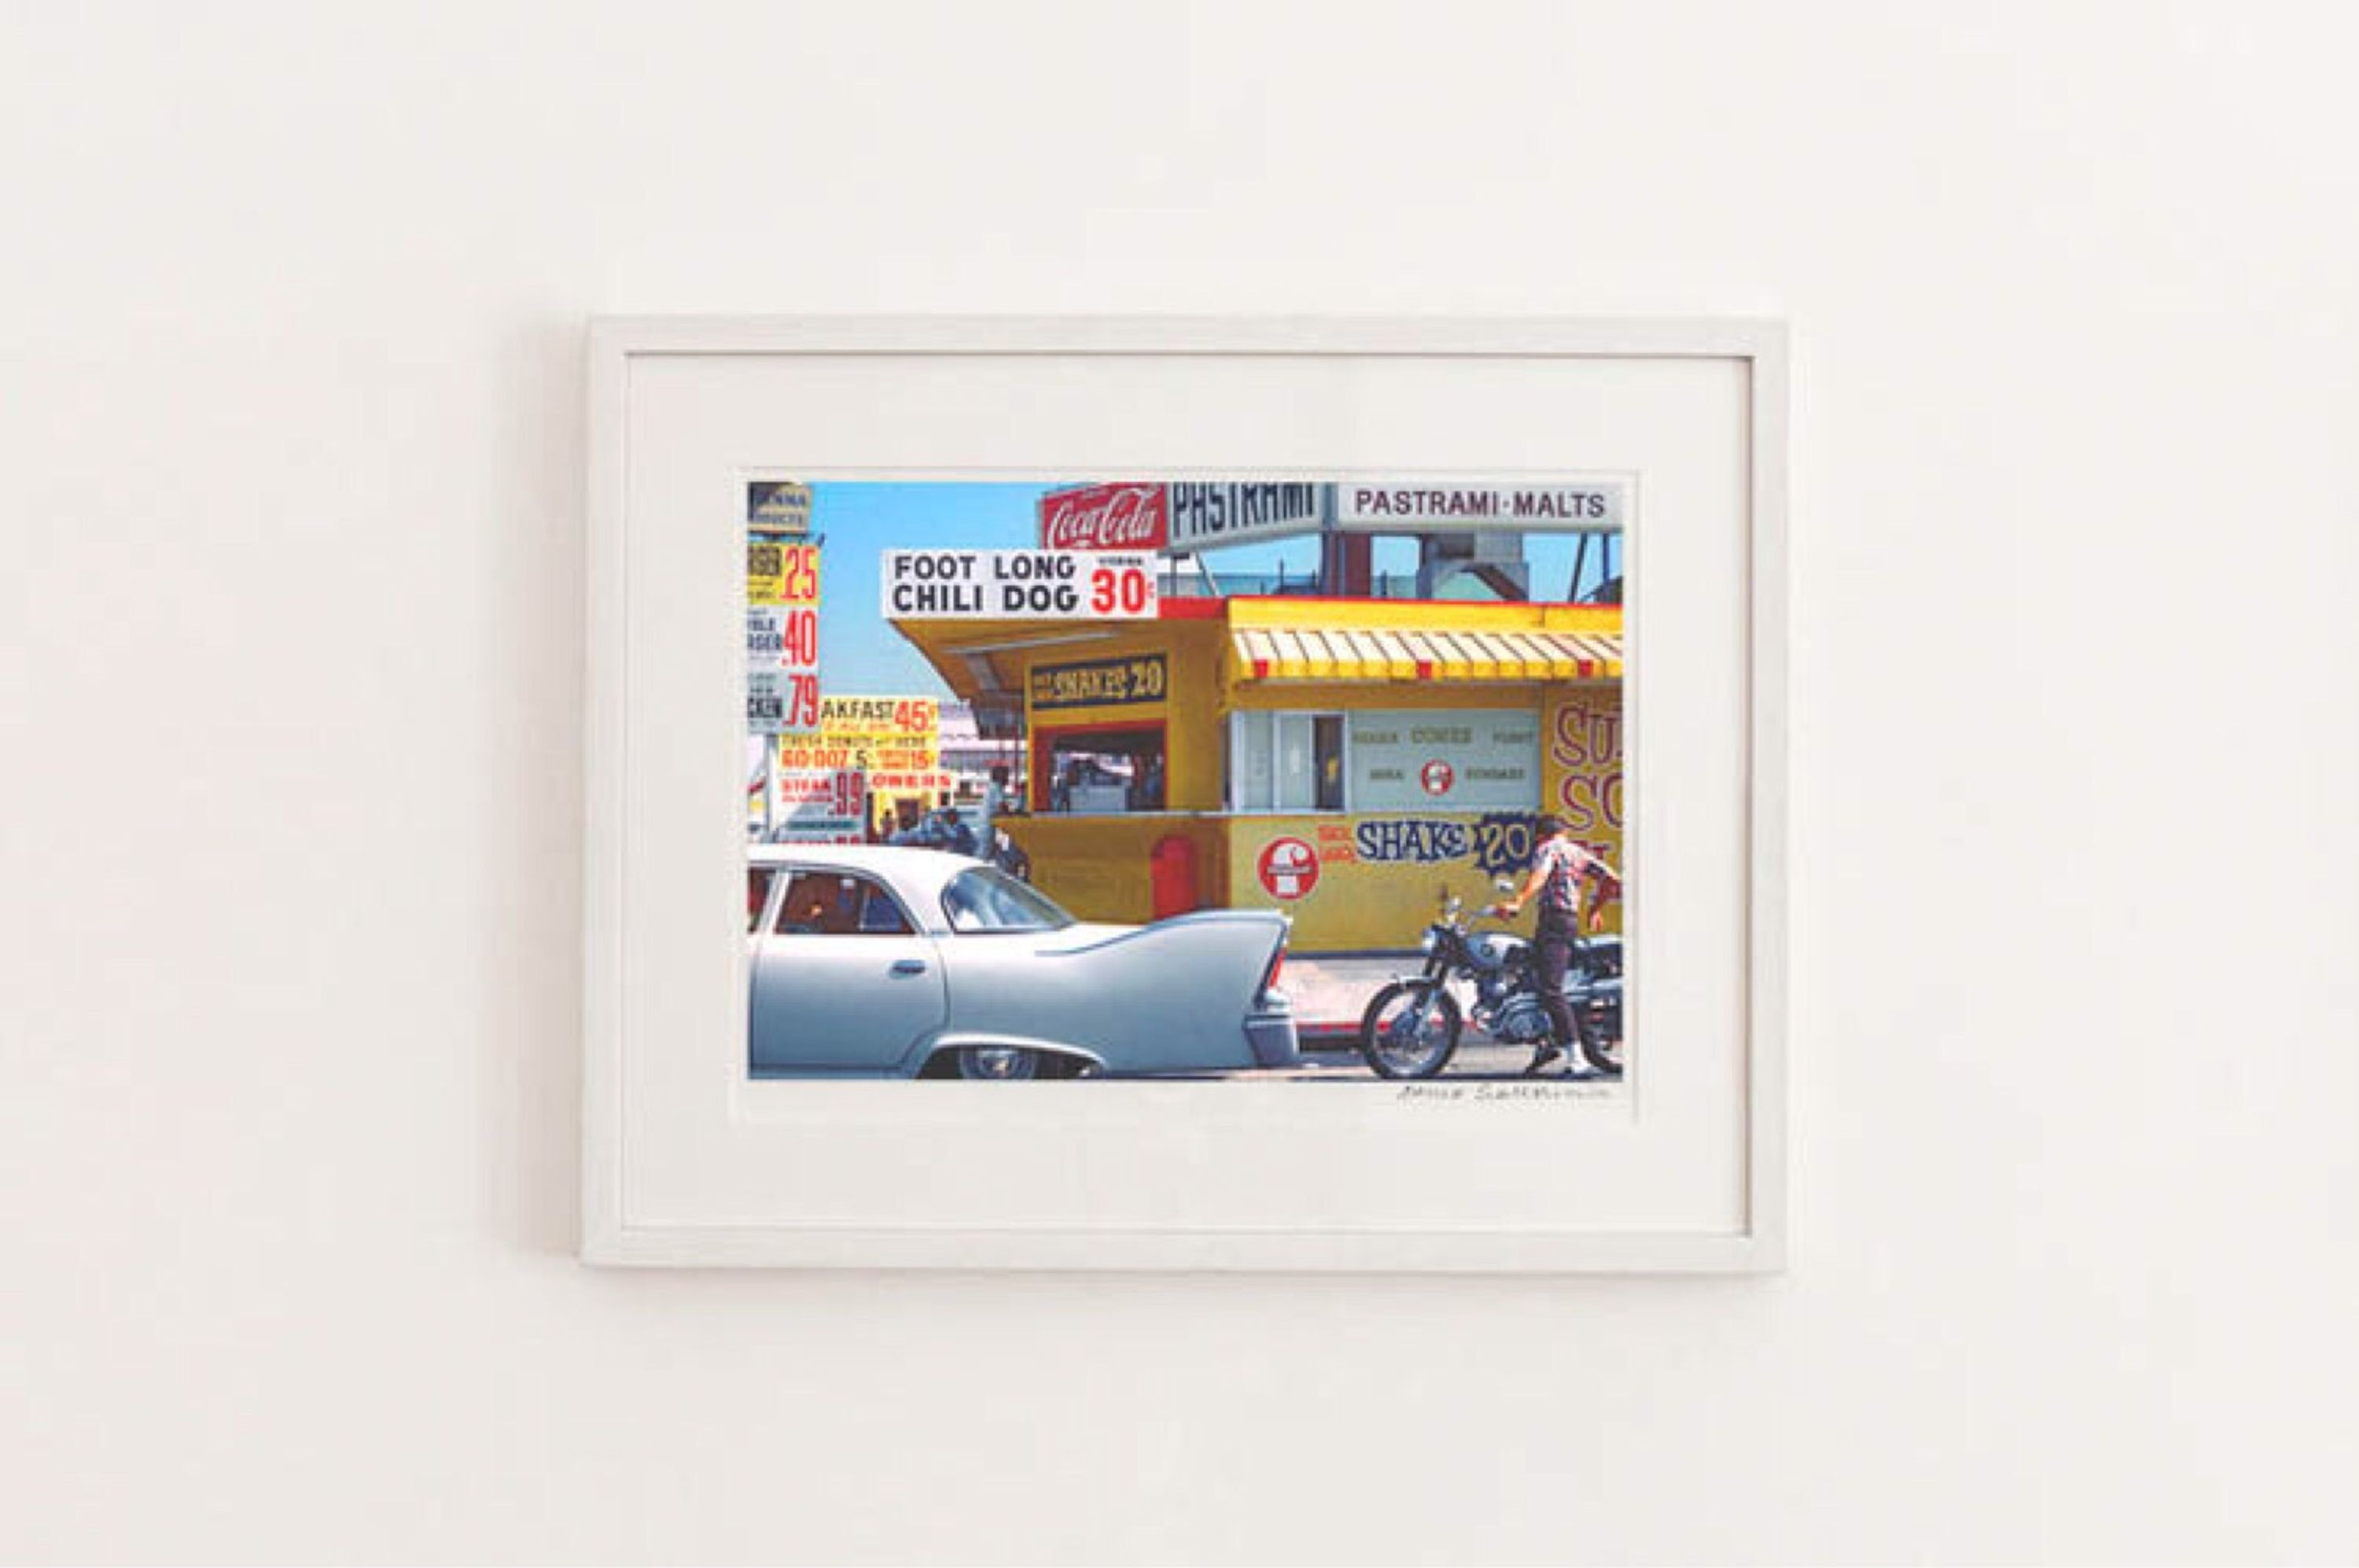 Pico Boulevard, Santa Monica by Denise Scott Brown, Romain Leclere